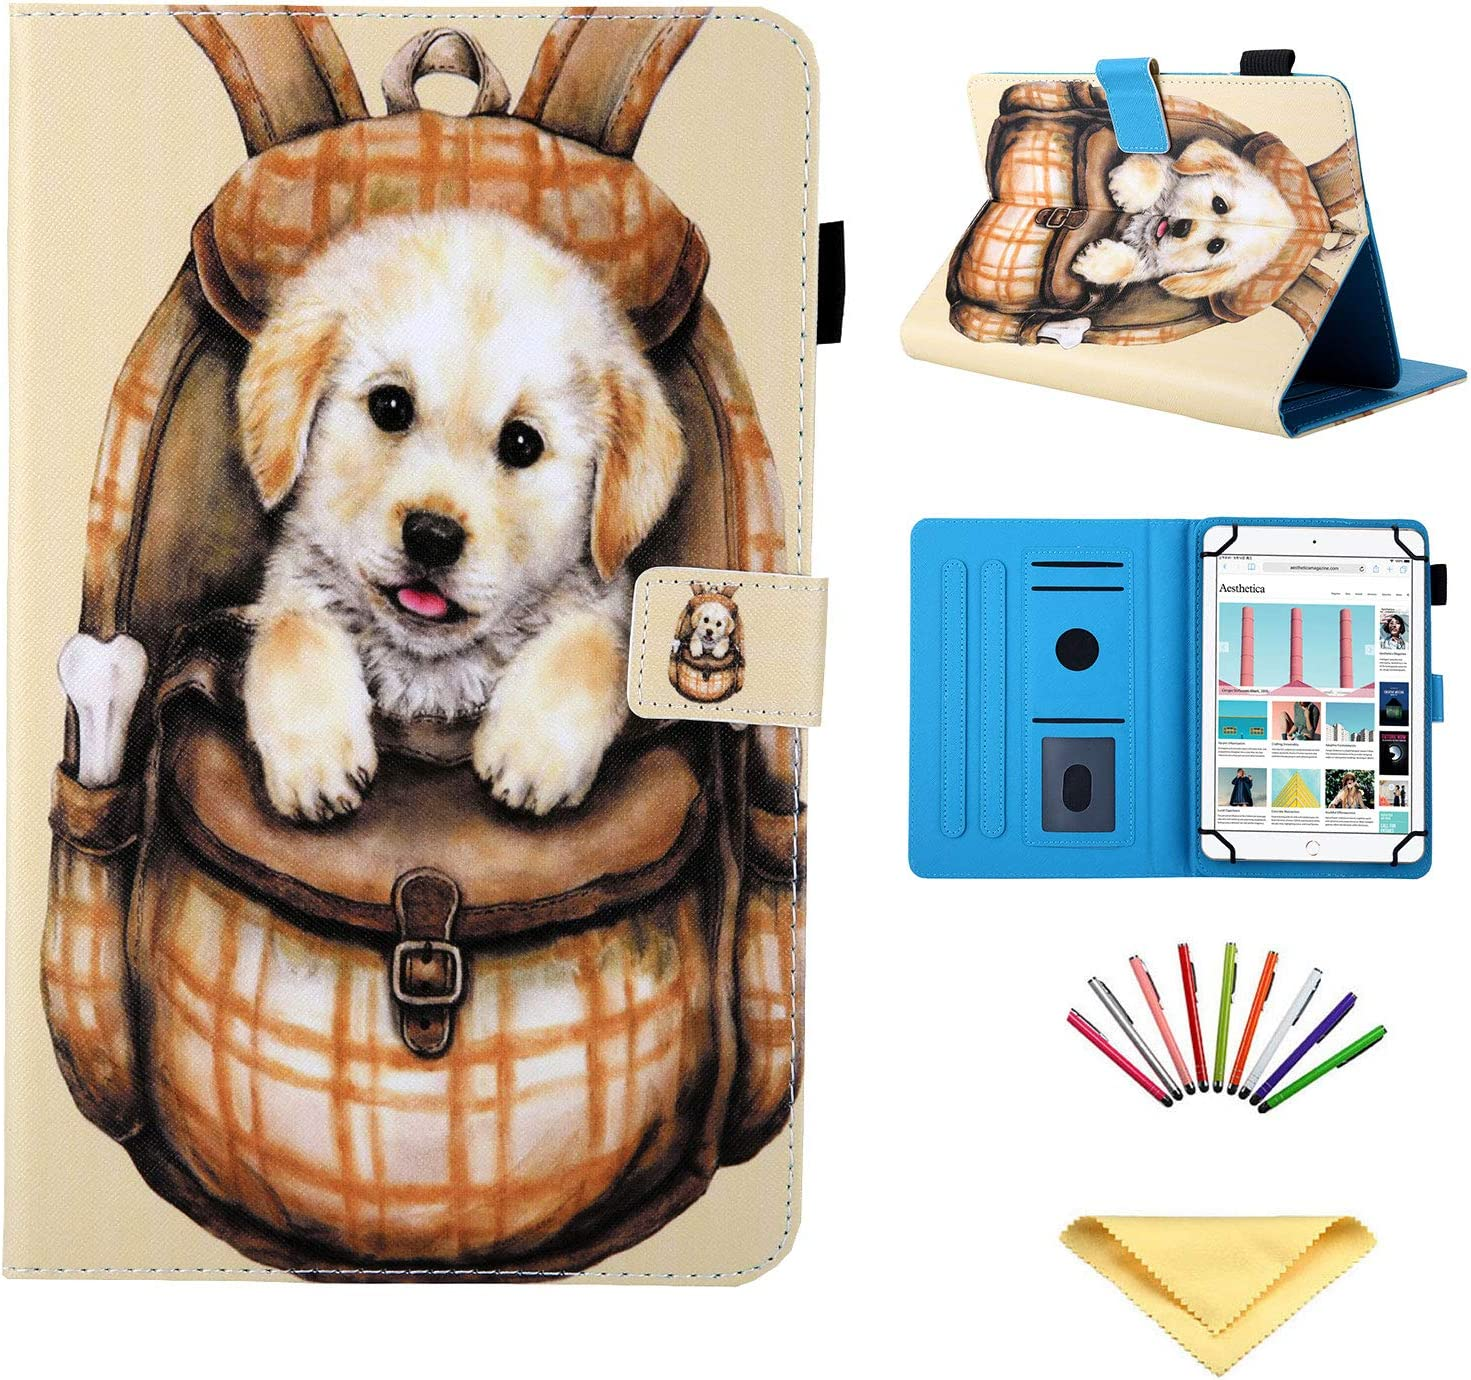 Universal Case for 7 inch Tablet, Uliking Stand PU Leather Cover for Samsung Galaxy Tab A/2/3/4/E 7.0, Tab 3/Tab E Lite 7.0 for Lenovo/HP/ASUS Zenpad/LG/Xiaomi/Mediapad More 6.5